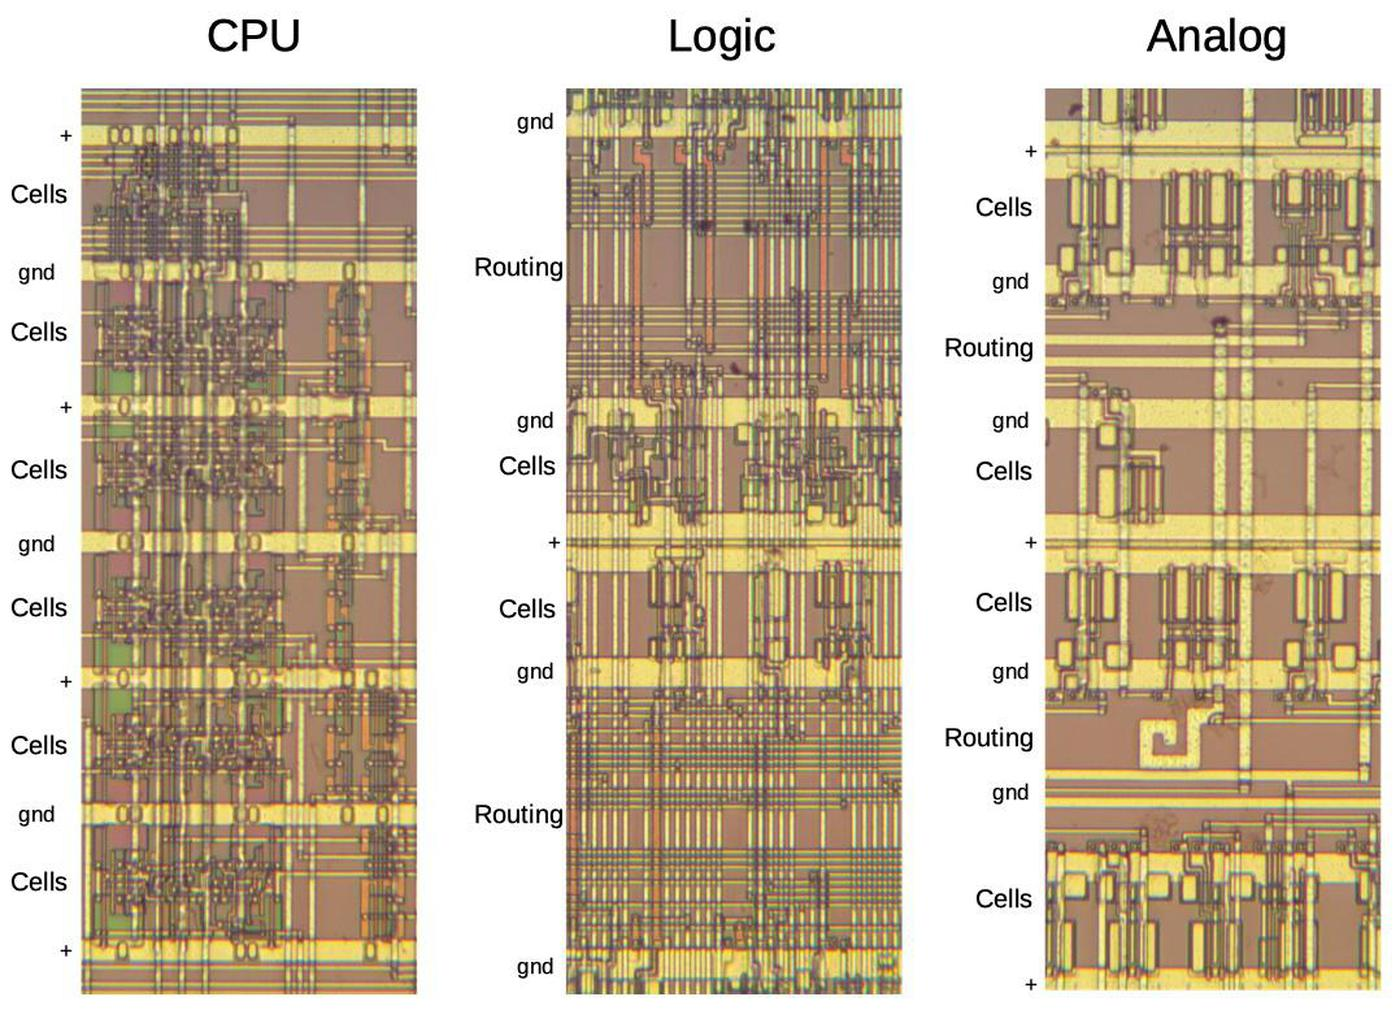 Comparison of standard cells in the CPU, general logic, and the analog block.